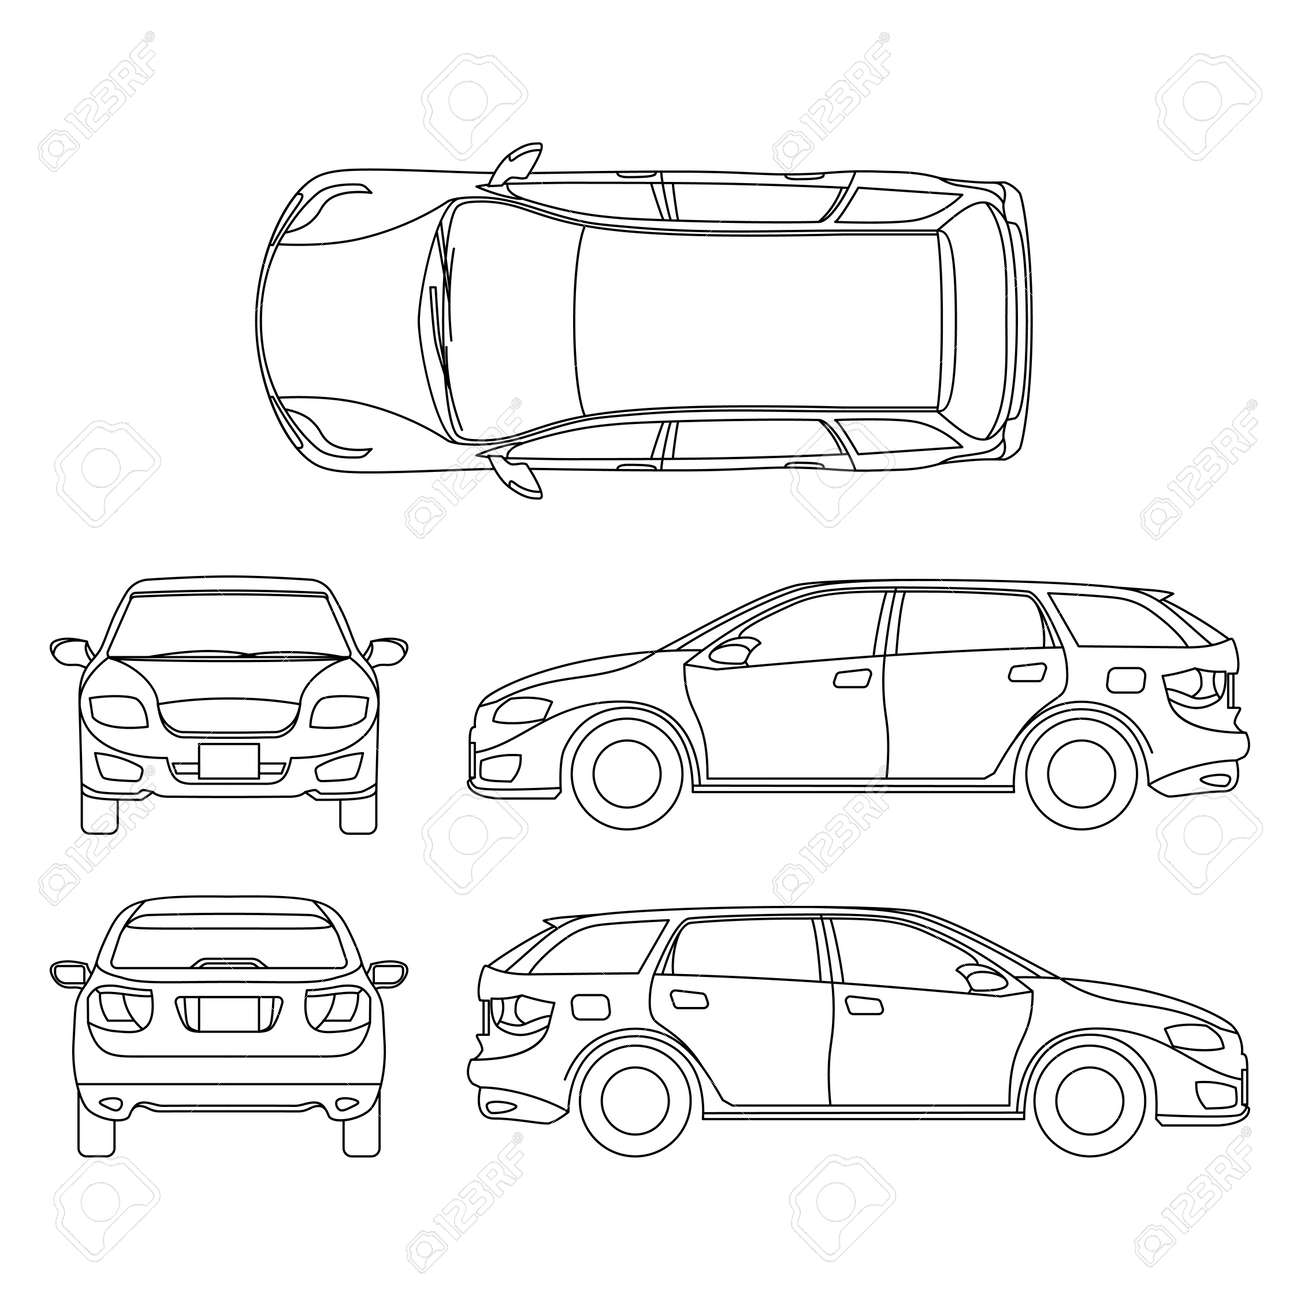 Line drawing of car white vehicle, vector computer art. Model of car, sketchy graphic transport car illustration - 165951907